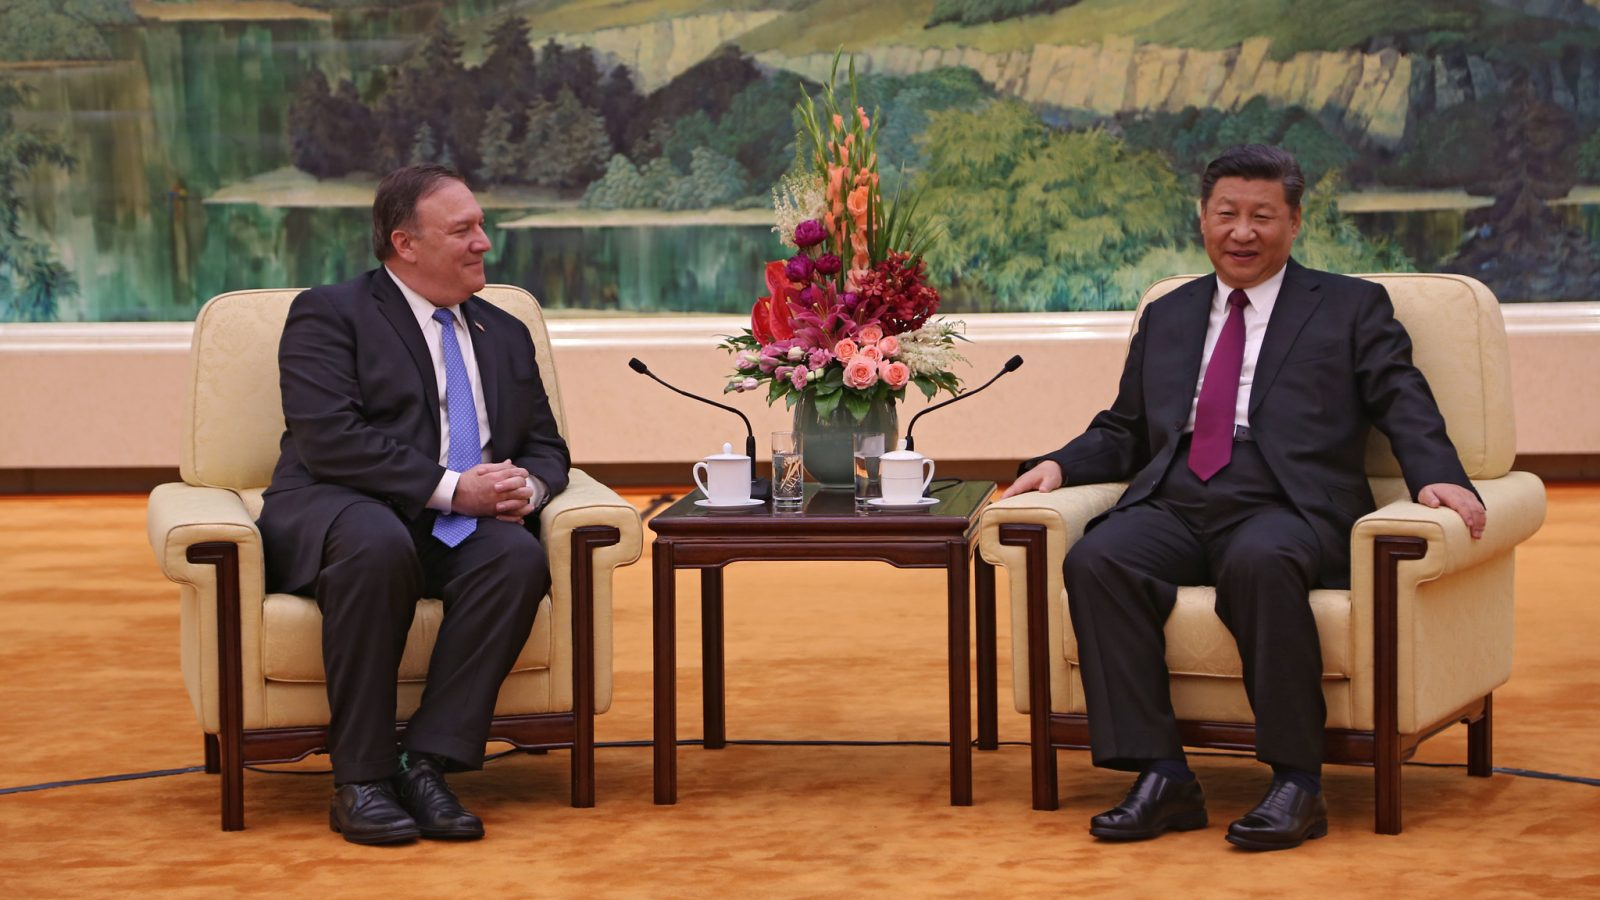 U.S. Secretary of State Mike Pompeo meets with Chinese President Xi Jinping at the Great Hall of the People in Beijing in 2018